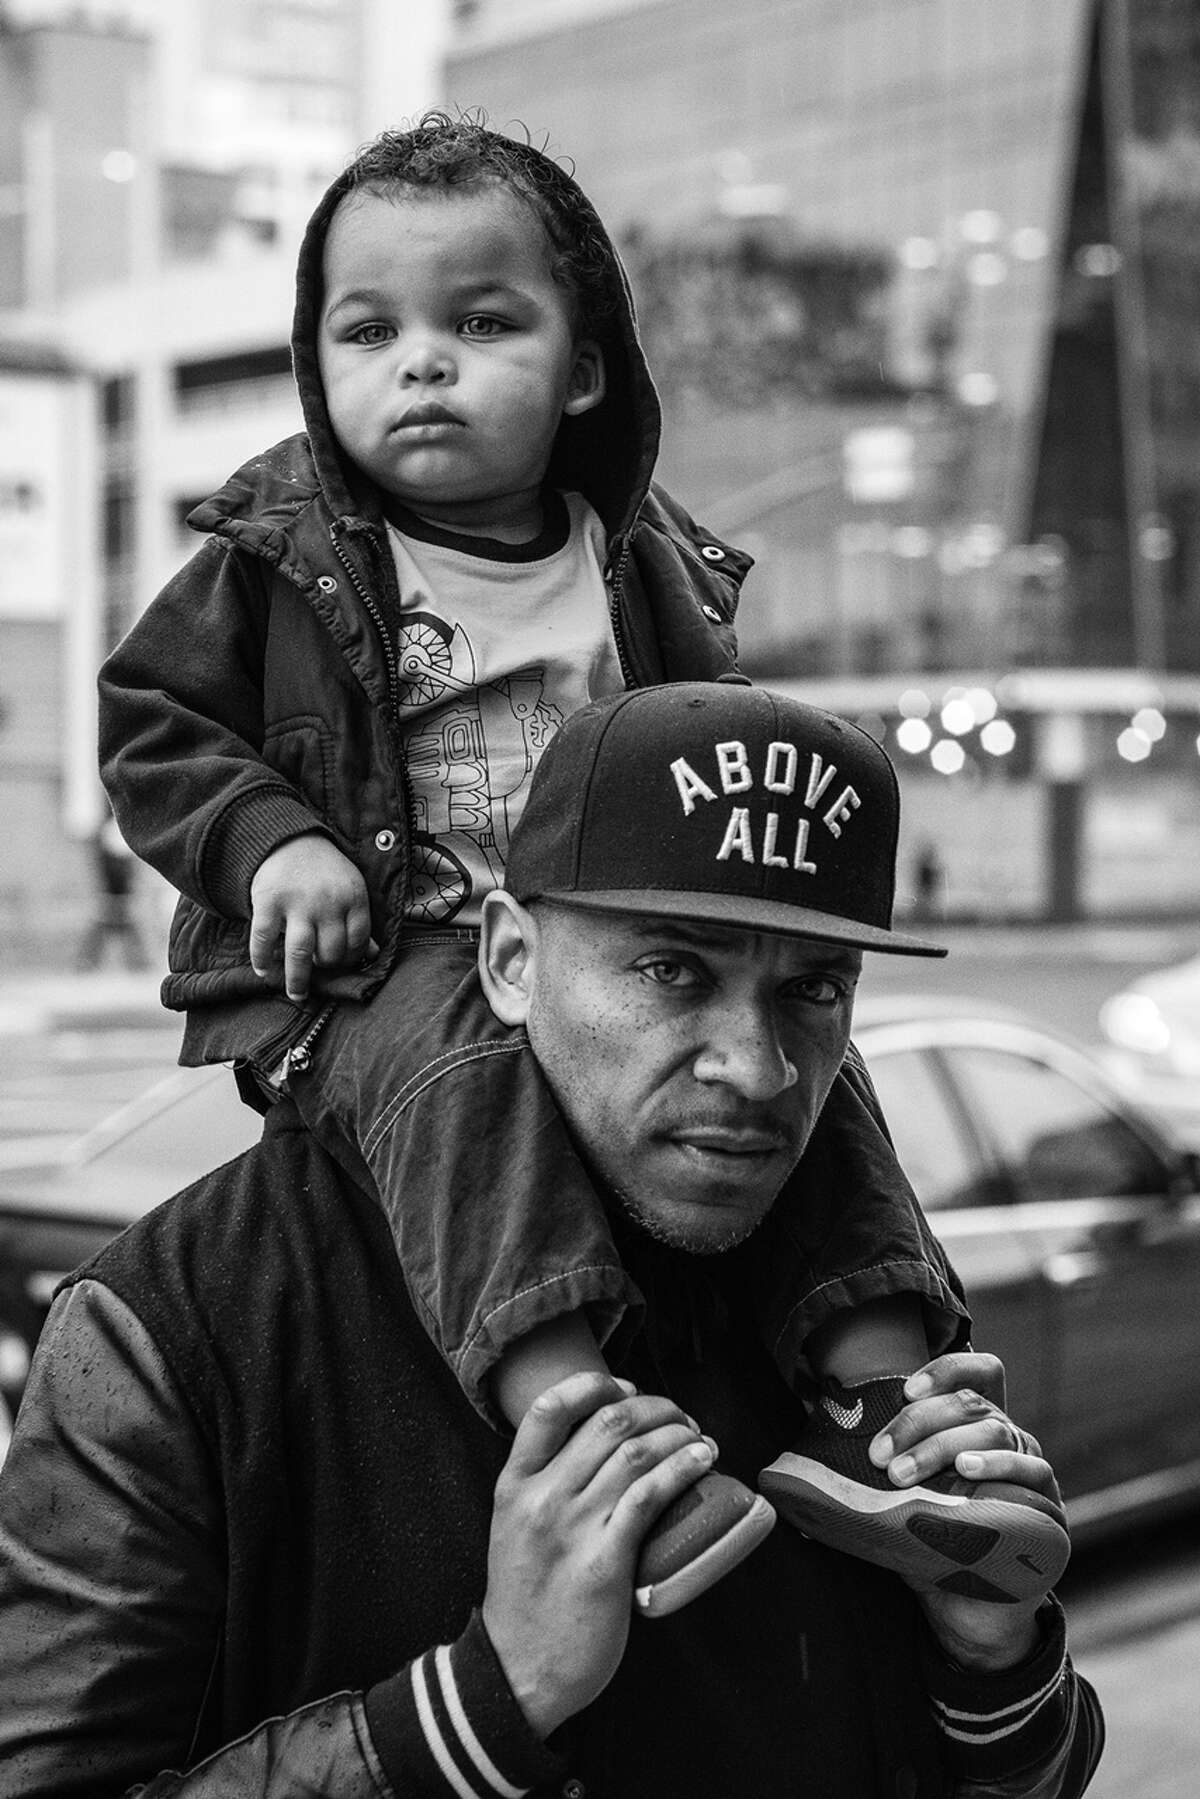 Over the past several months on his Instagram page @ruffdraft, Brandon Ruffin has featured a series of powerful and personal portraits of the African American community in Oakland.